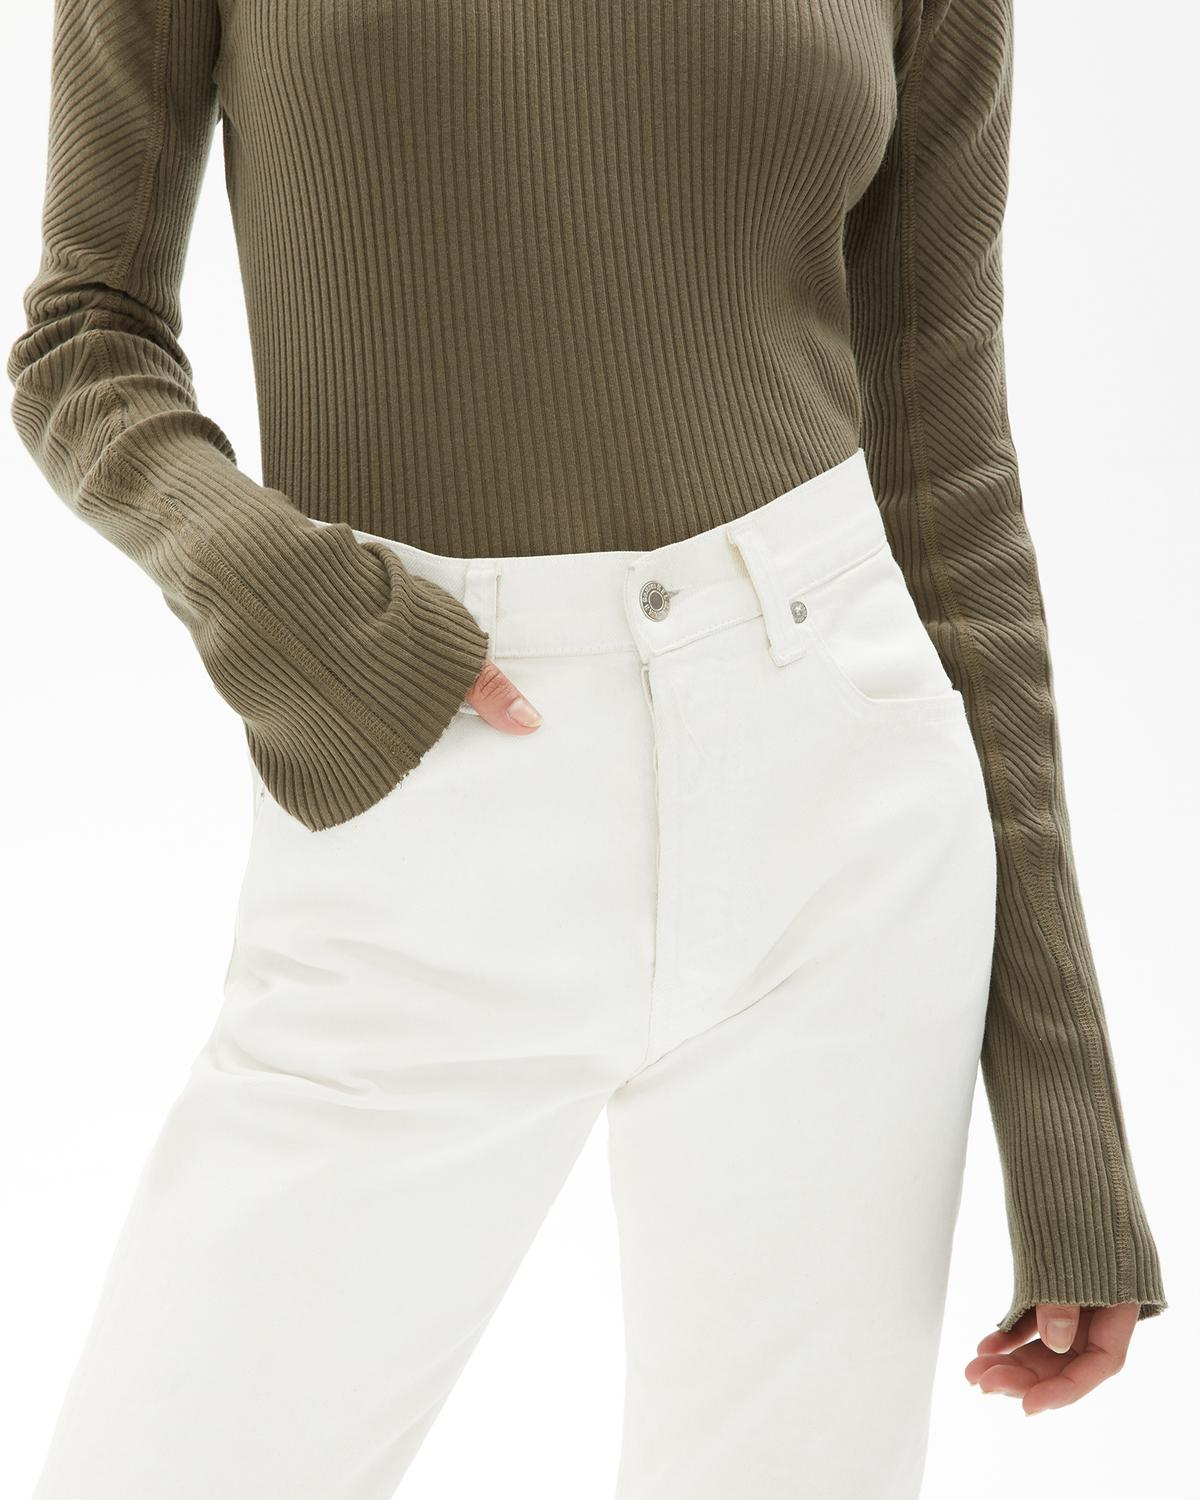 Cotton Rib Crewneck Top